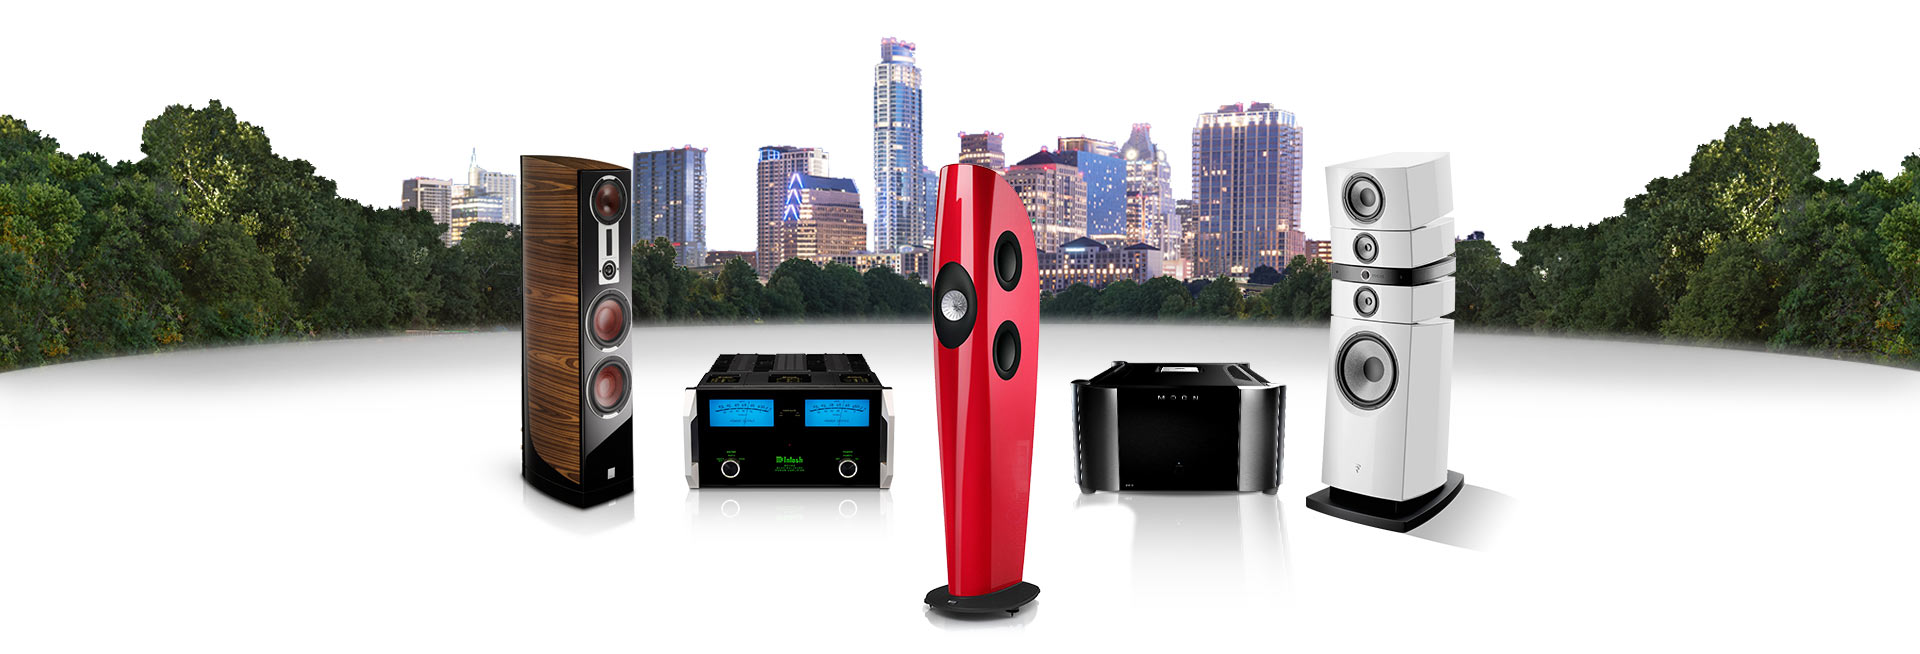 Origin HiFi Home | 2-Channel Audio with Austin Texas in the Background